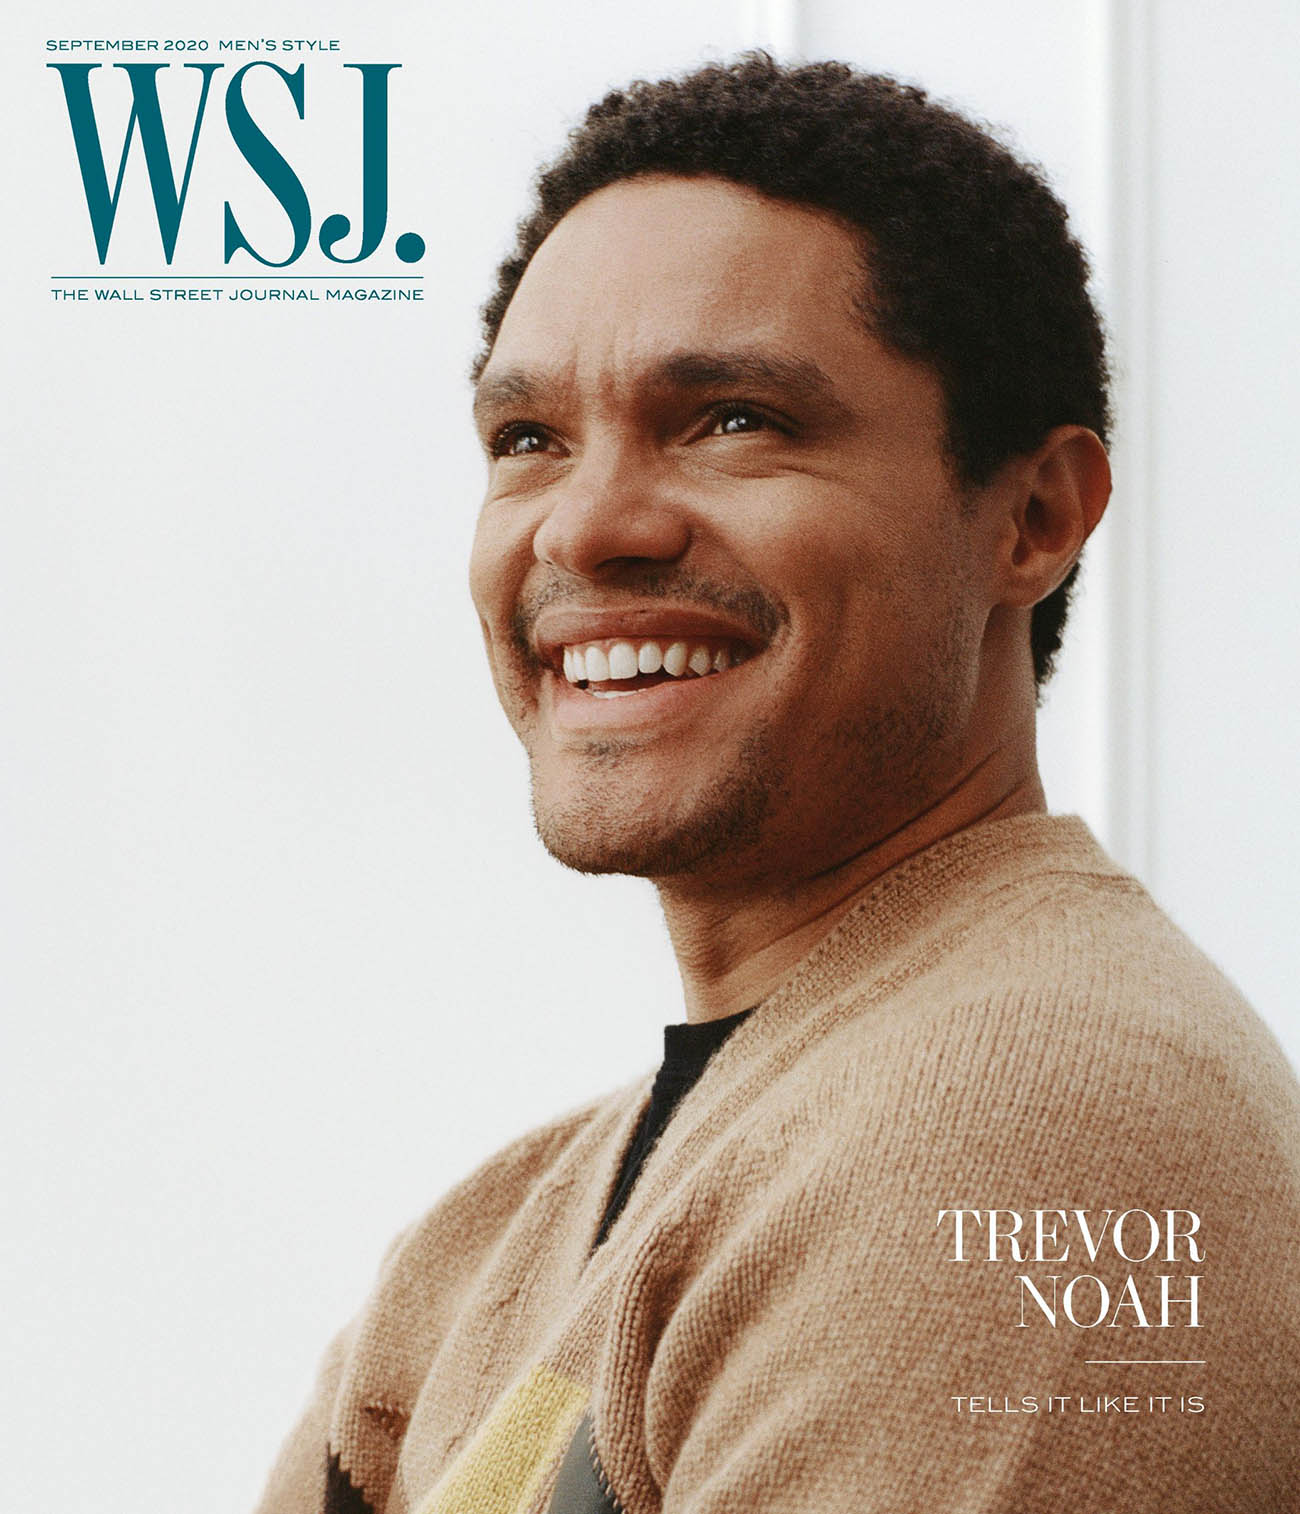 Trevor Noah covers WSJ. Magazine September 2020 Men's Style by Gioncarlo Valentine